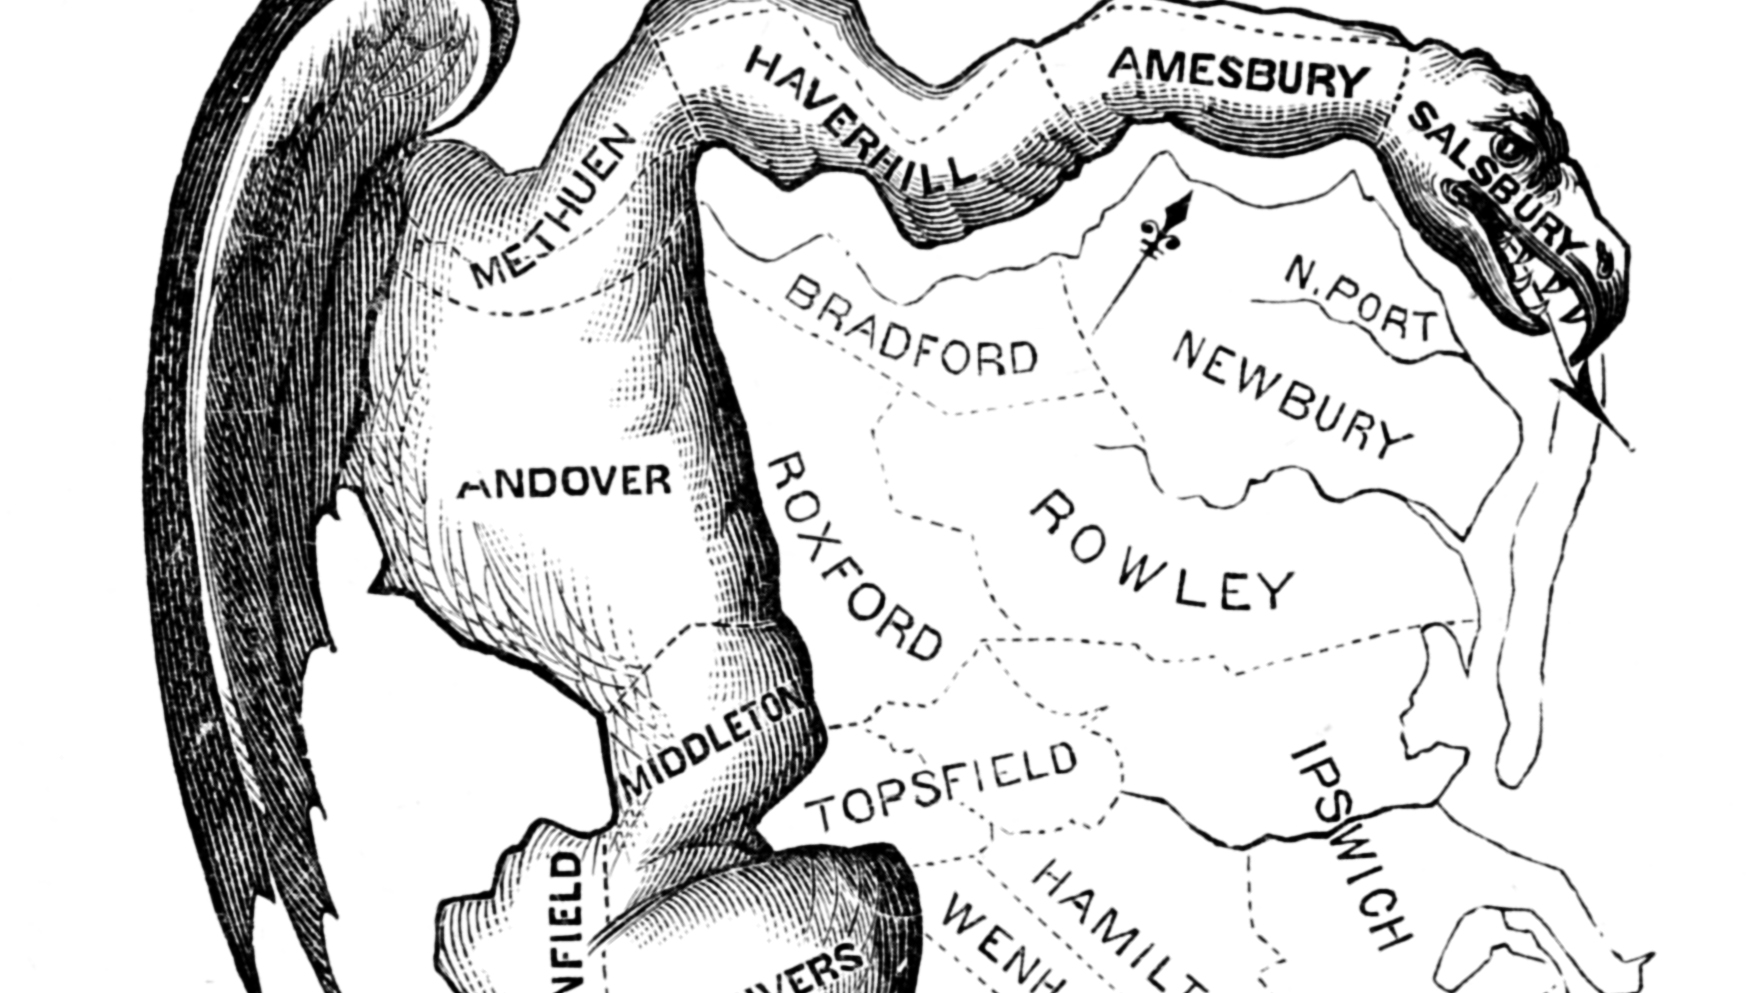 A map of the first-ever gerrymandered political districts in the county of Essex, England.